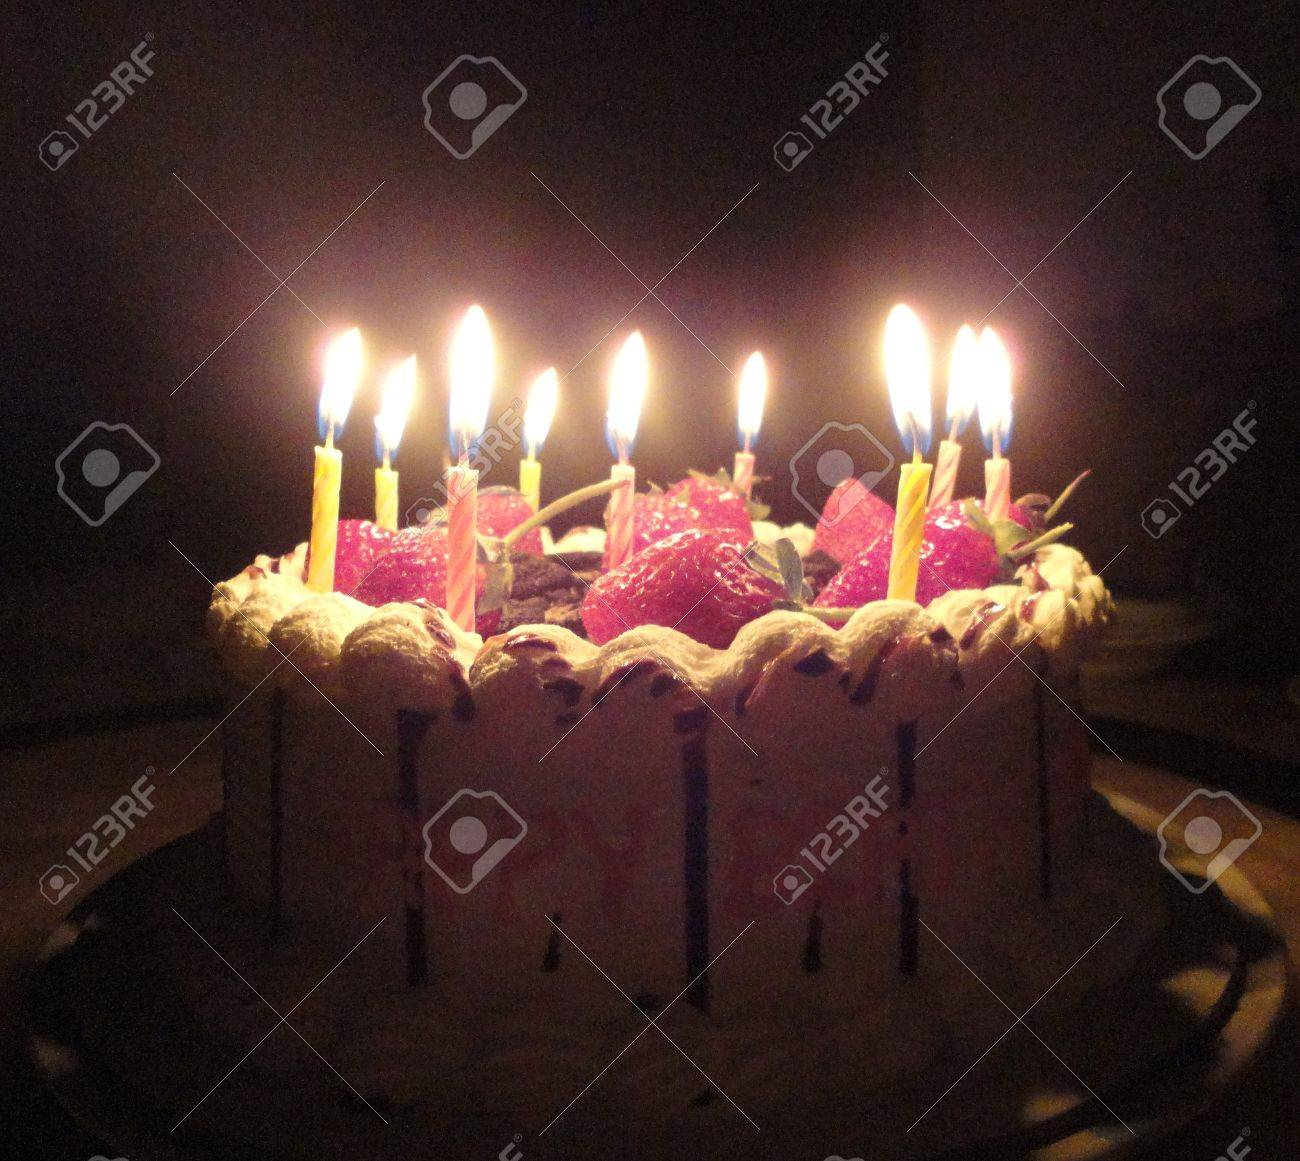 Birthday Cake With Sweet Strawberry And Light Candle In The Dark